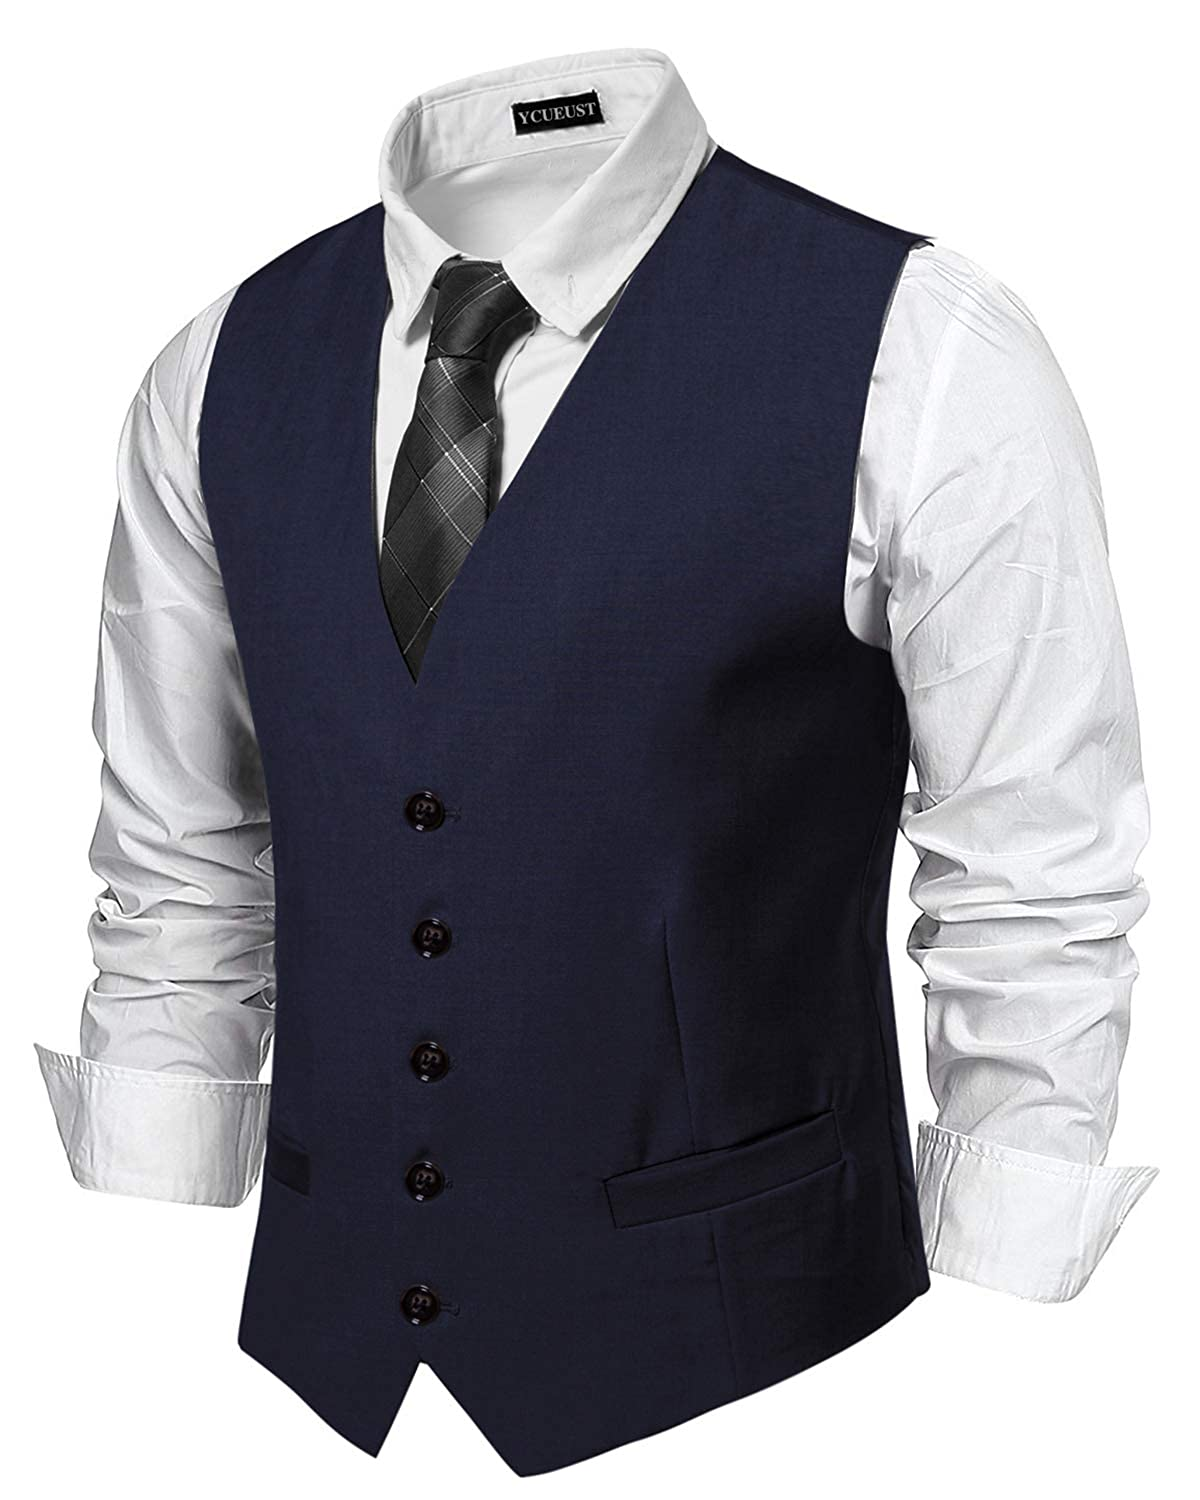 YCUEUST Men Classic V Neck Solid Color Casual Business Wedding Prom Waistcoat Gilet YCHENG08320YC